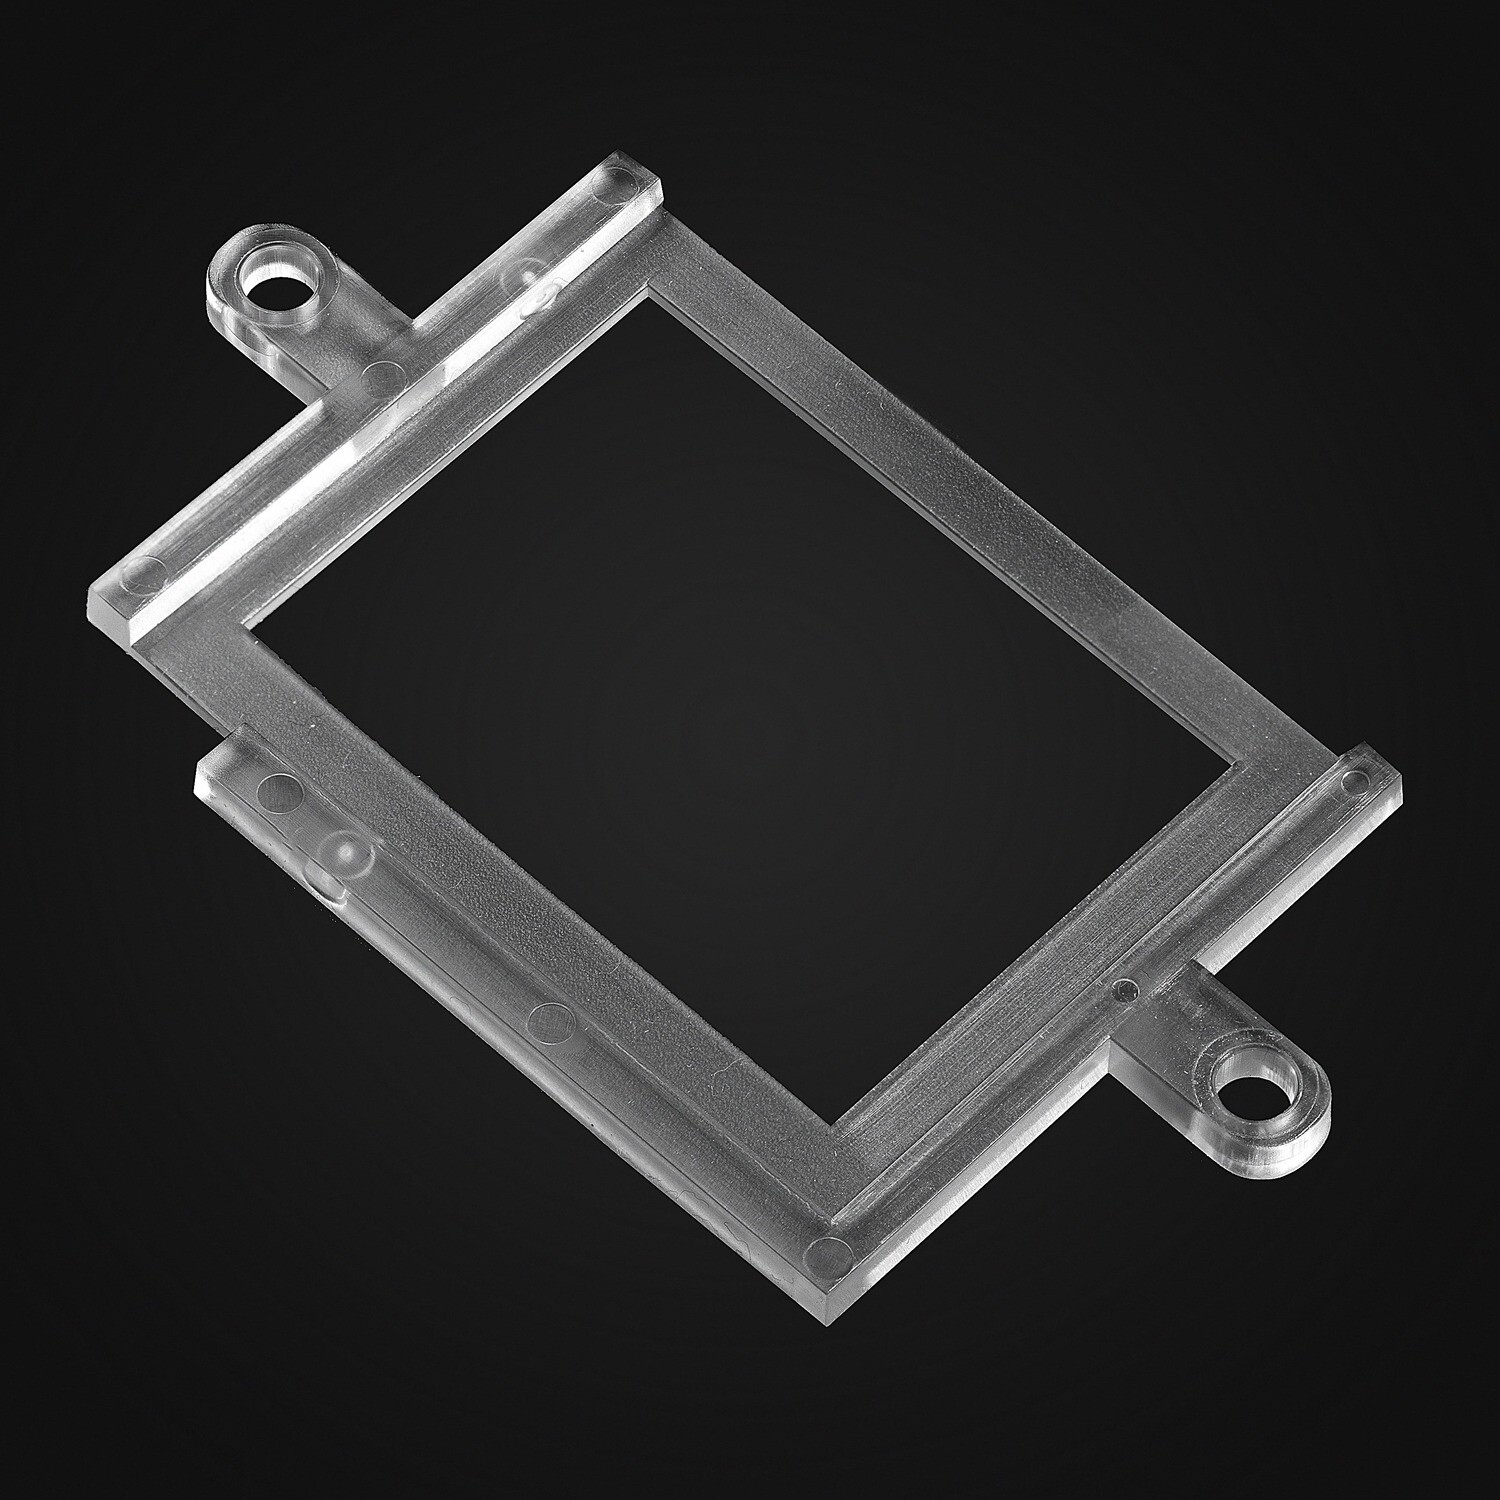 Game Boy Original IPS Screen Bracket (V3)